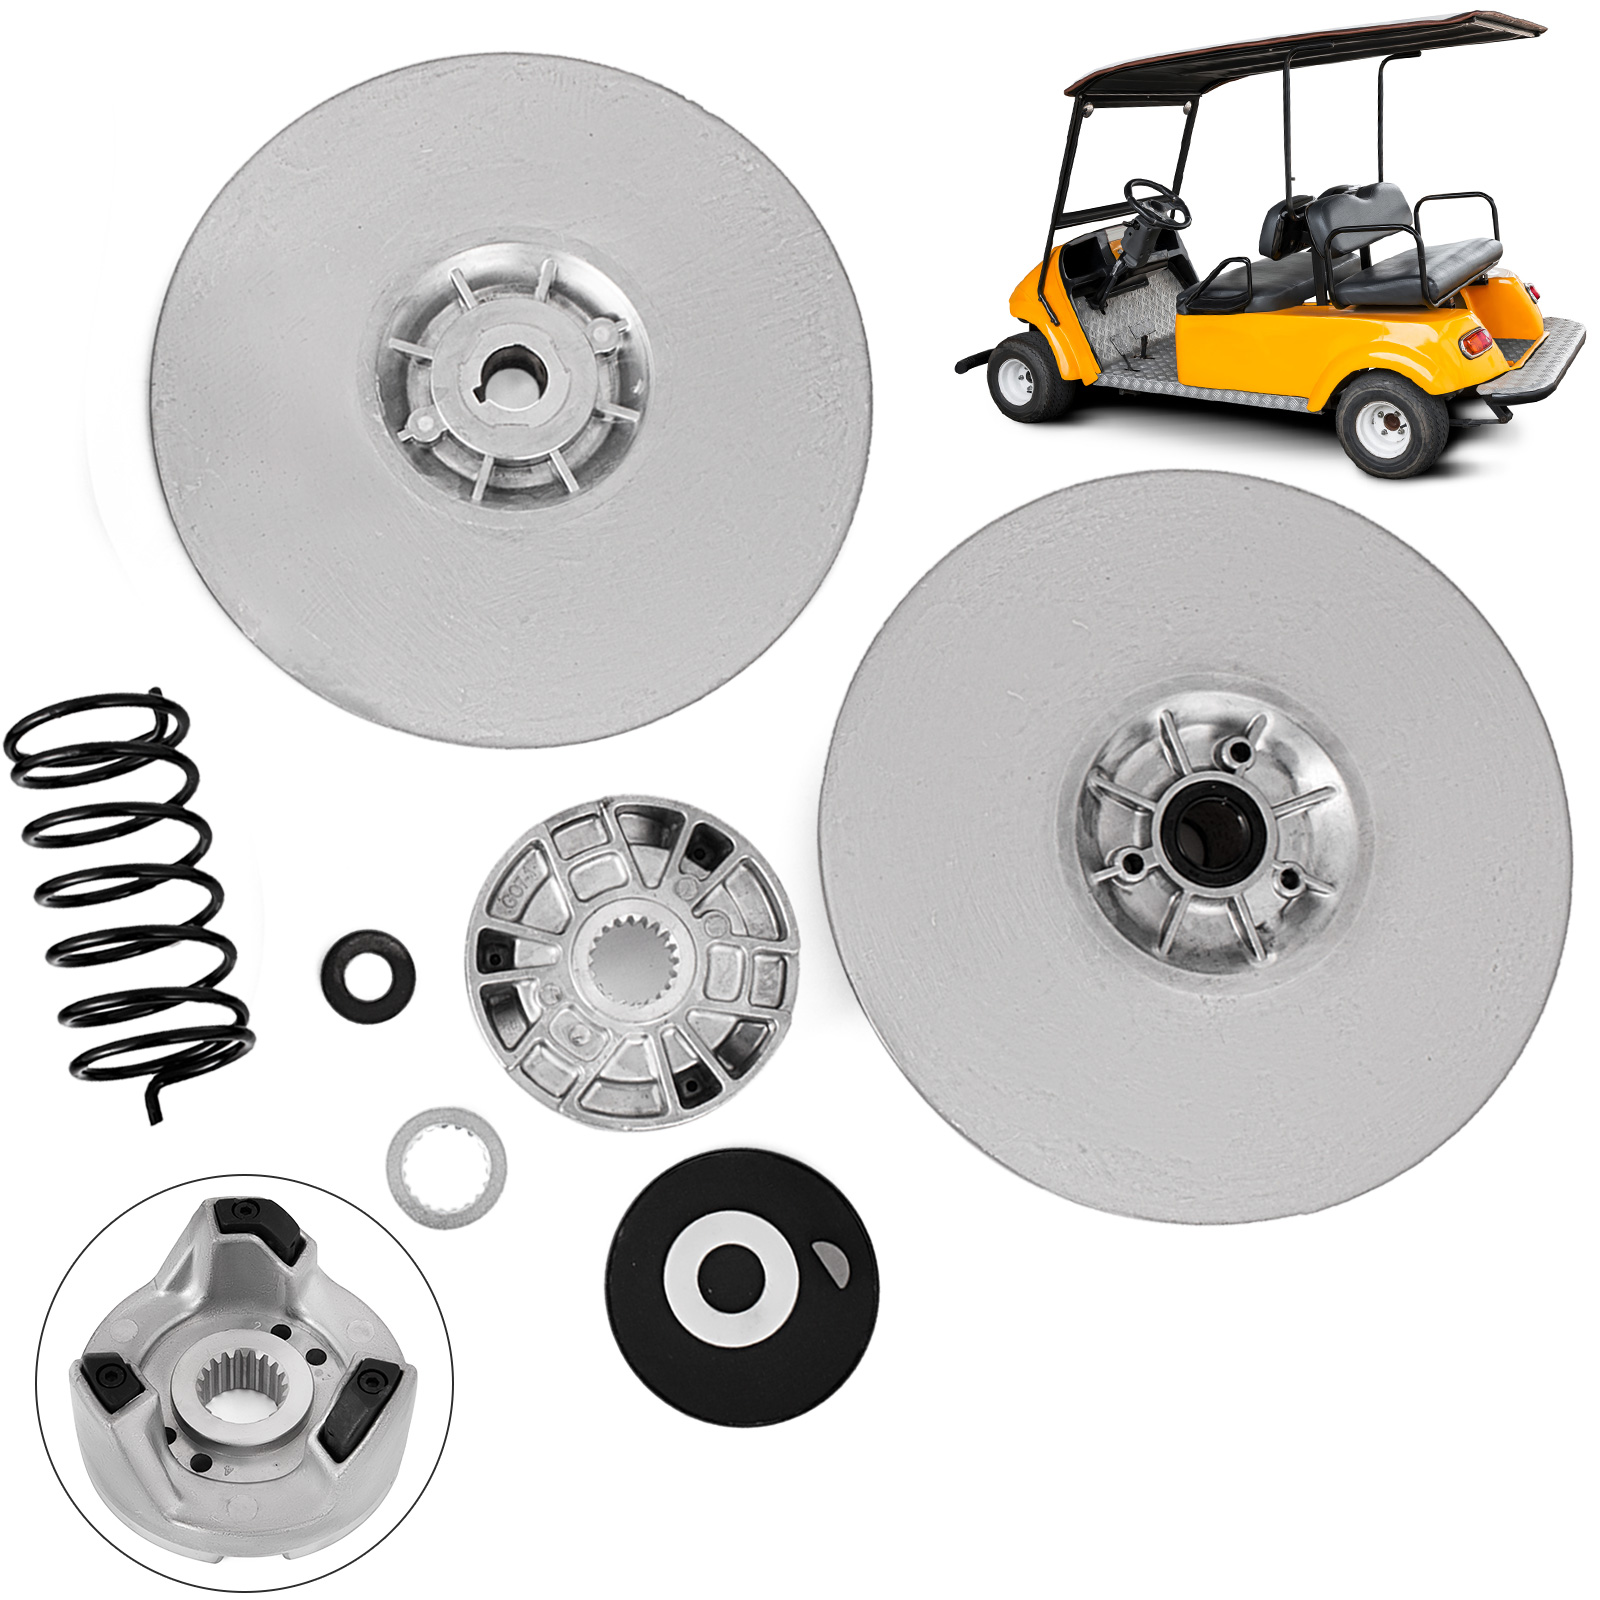 hight resolution of details about yamaha gas golf cart driven clutch kit g2 g22 secondary power g16 heavy duty